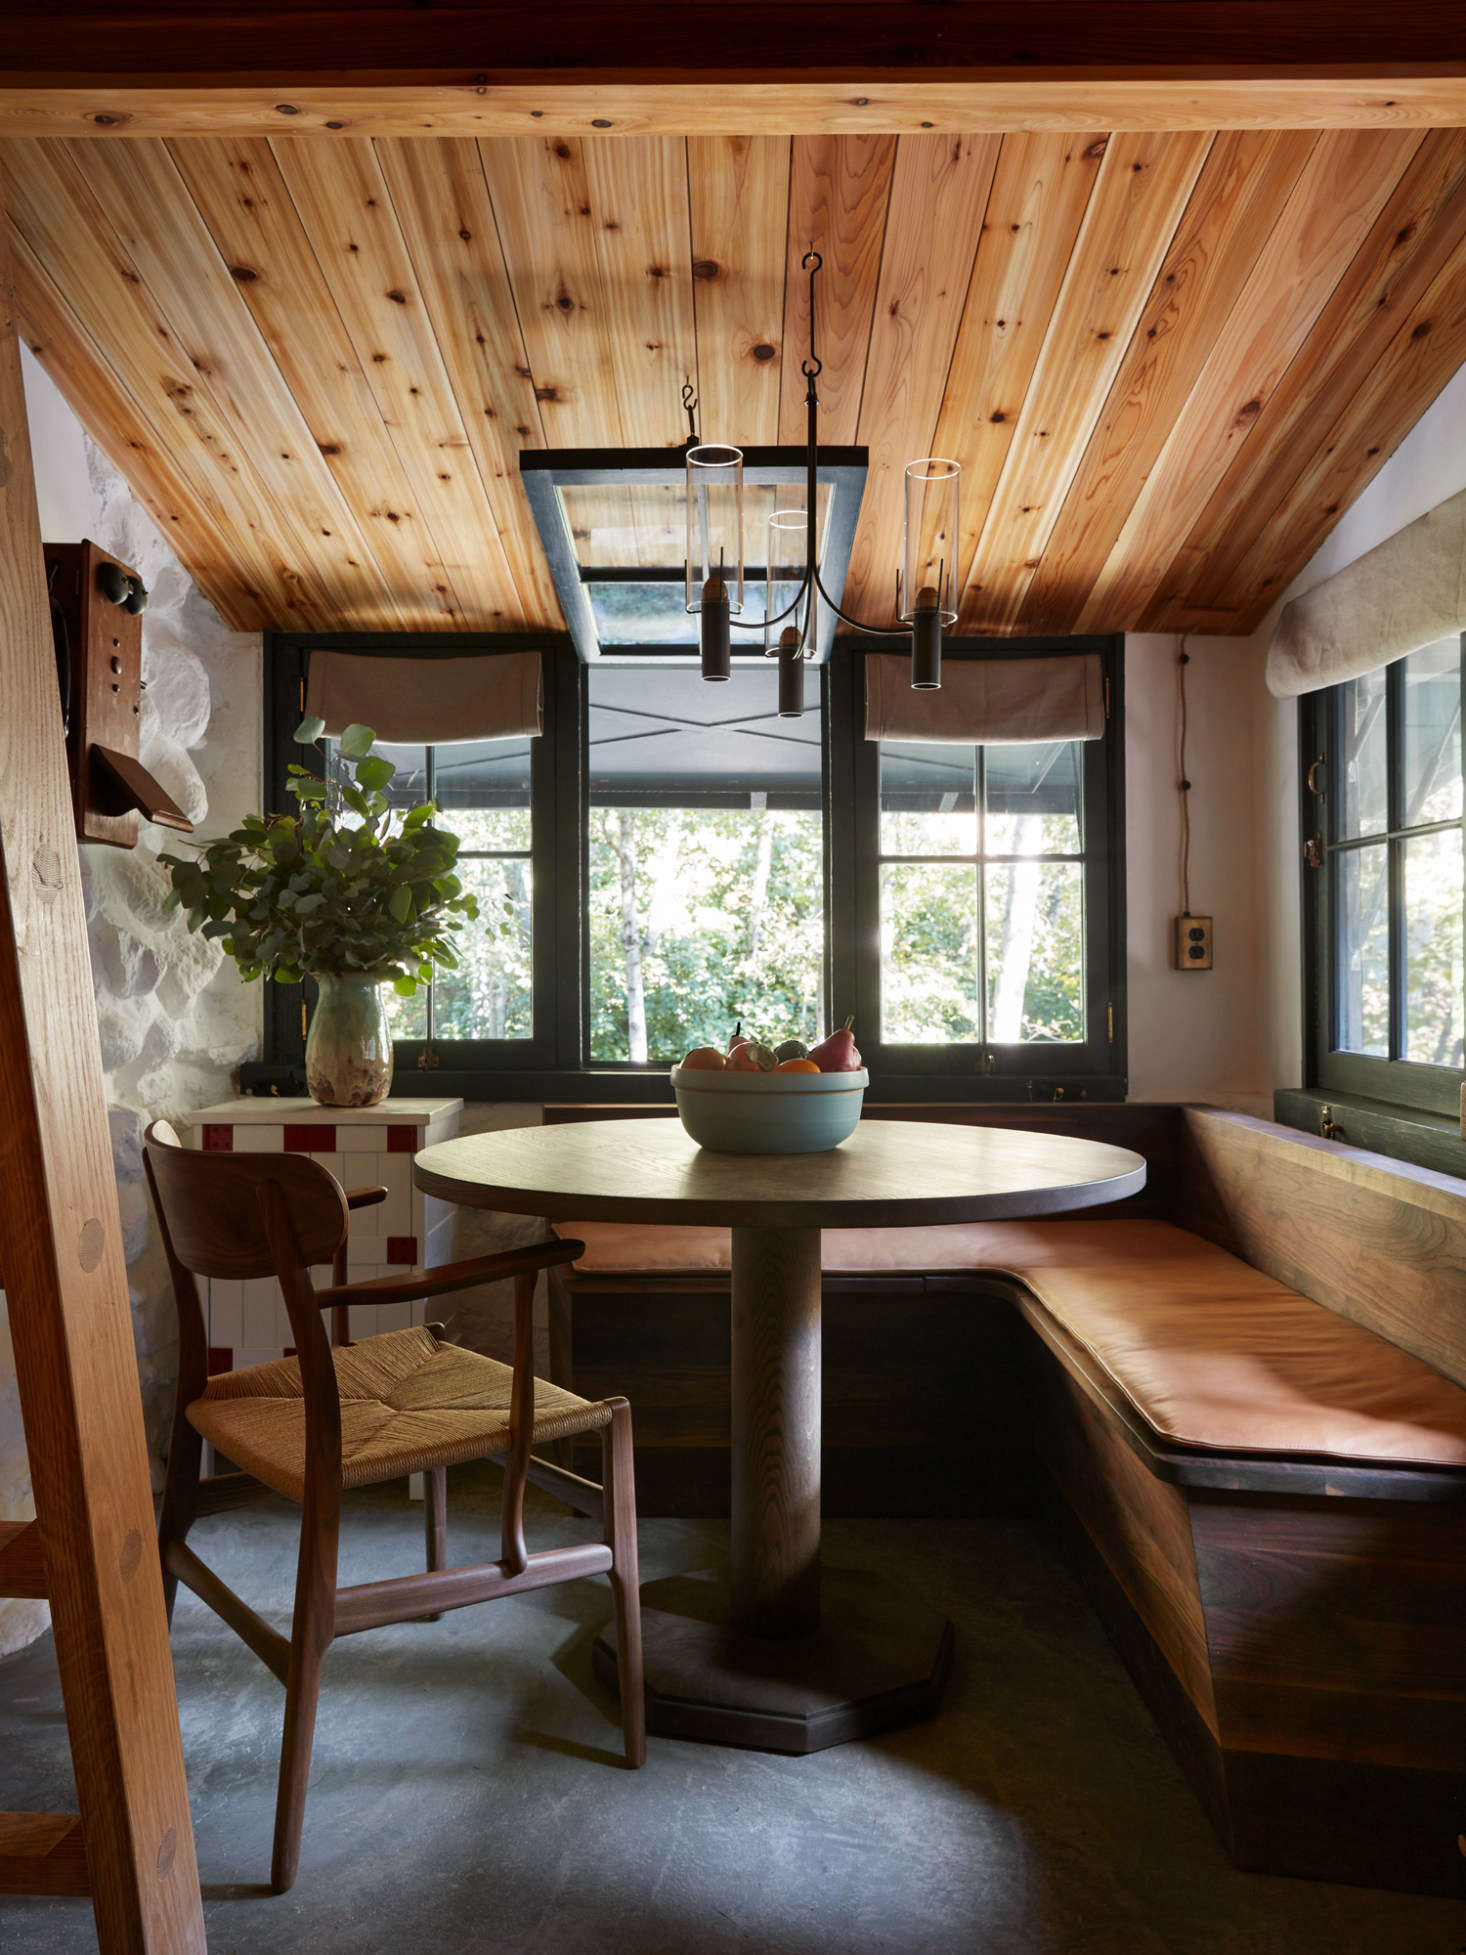 Concrete floors take over in in the kitchen. All the walls inside are limewashed. A ceiling light from Robert Long Lighting hovers over the dining nook.